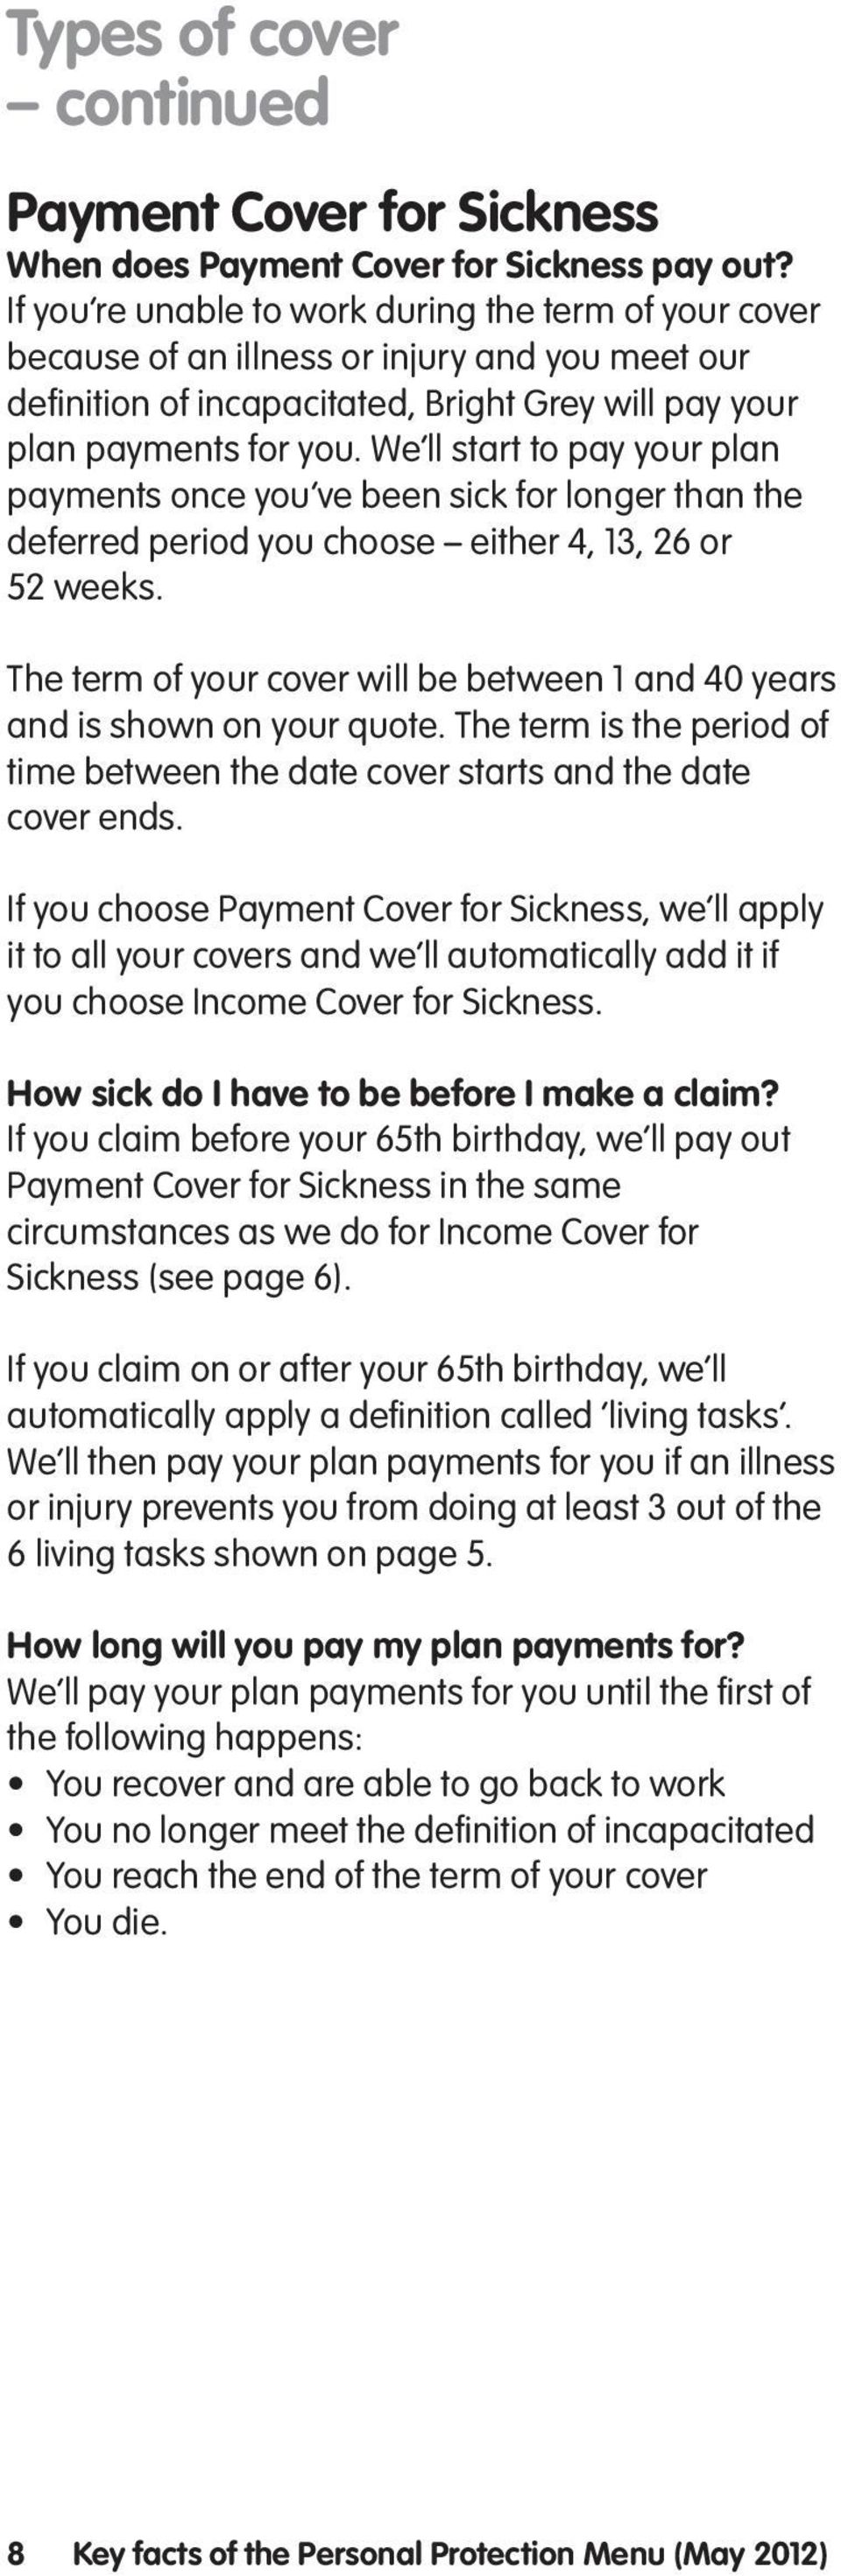 We ll start to pay your plan payments once you ve been sick for longer than the deferred period you choose either 4, 13, 26 or 52 weeks.